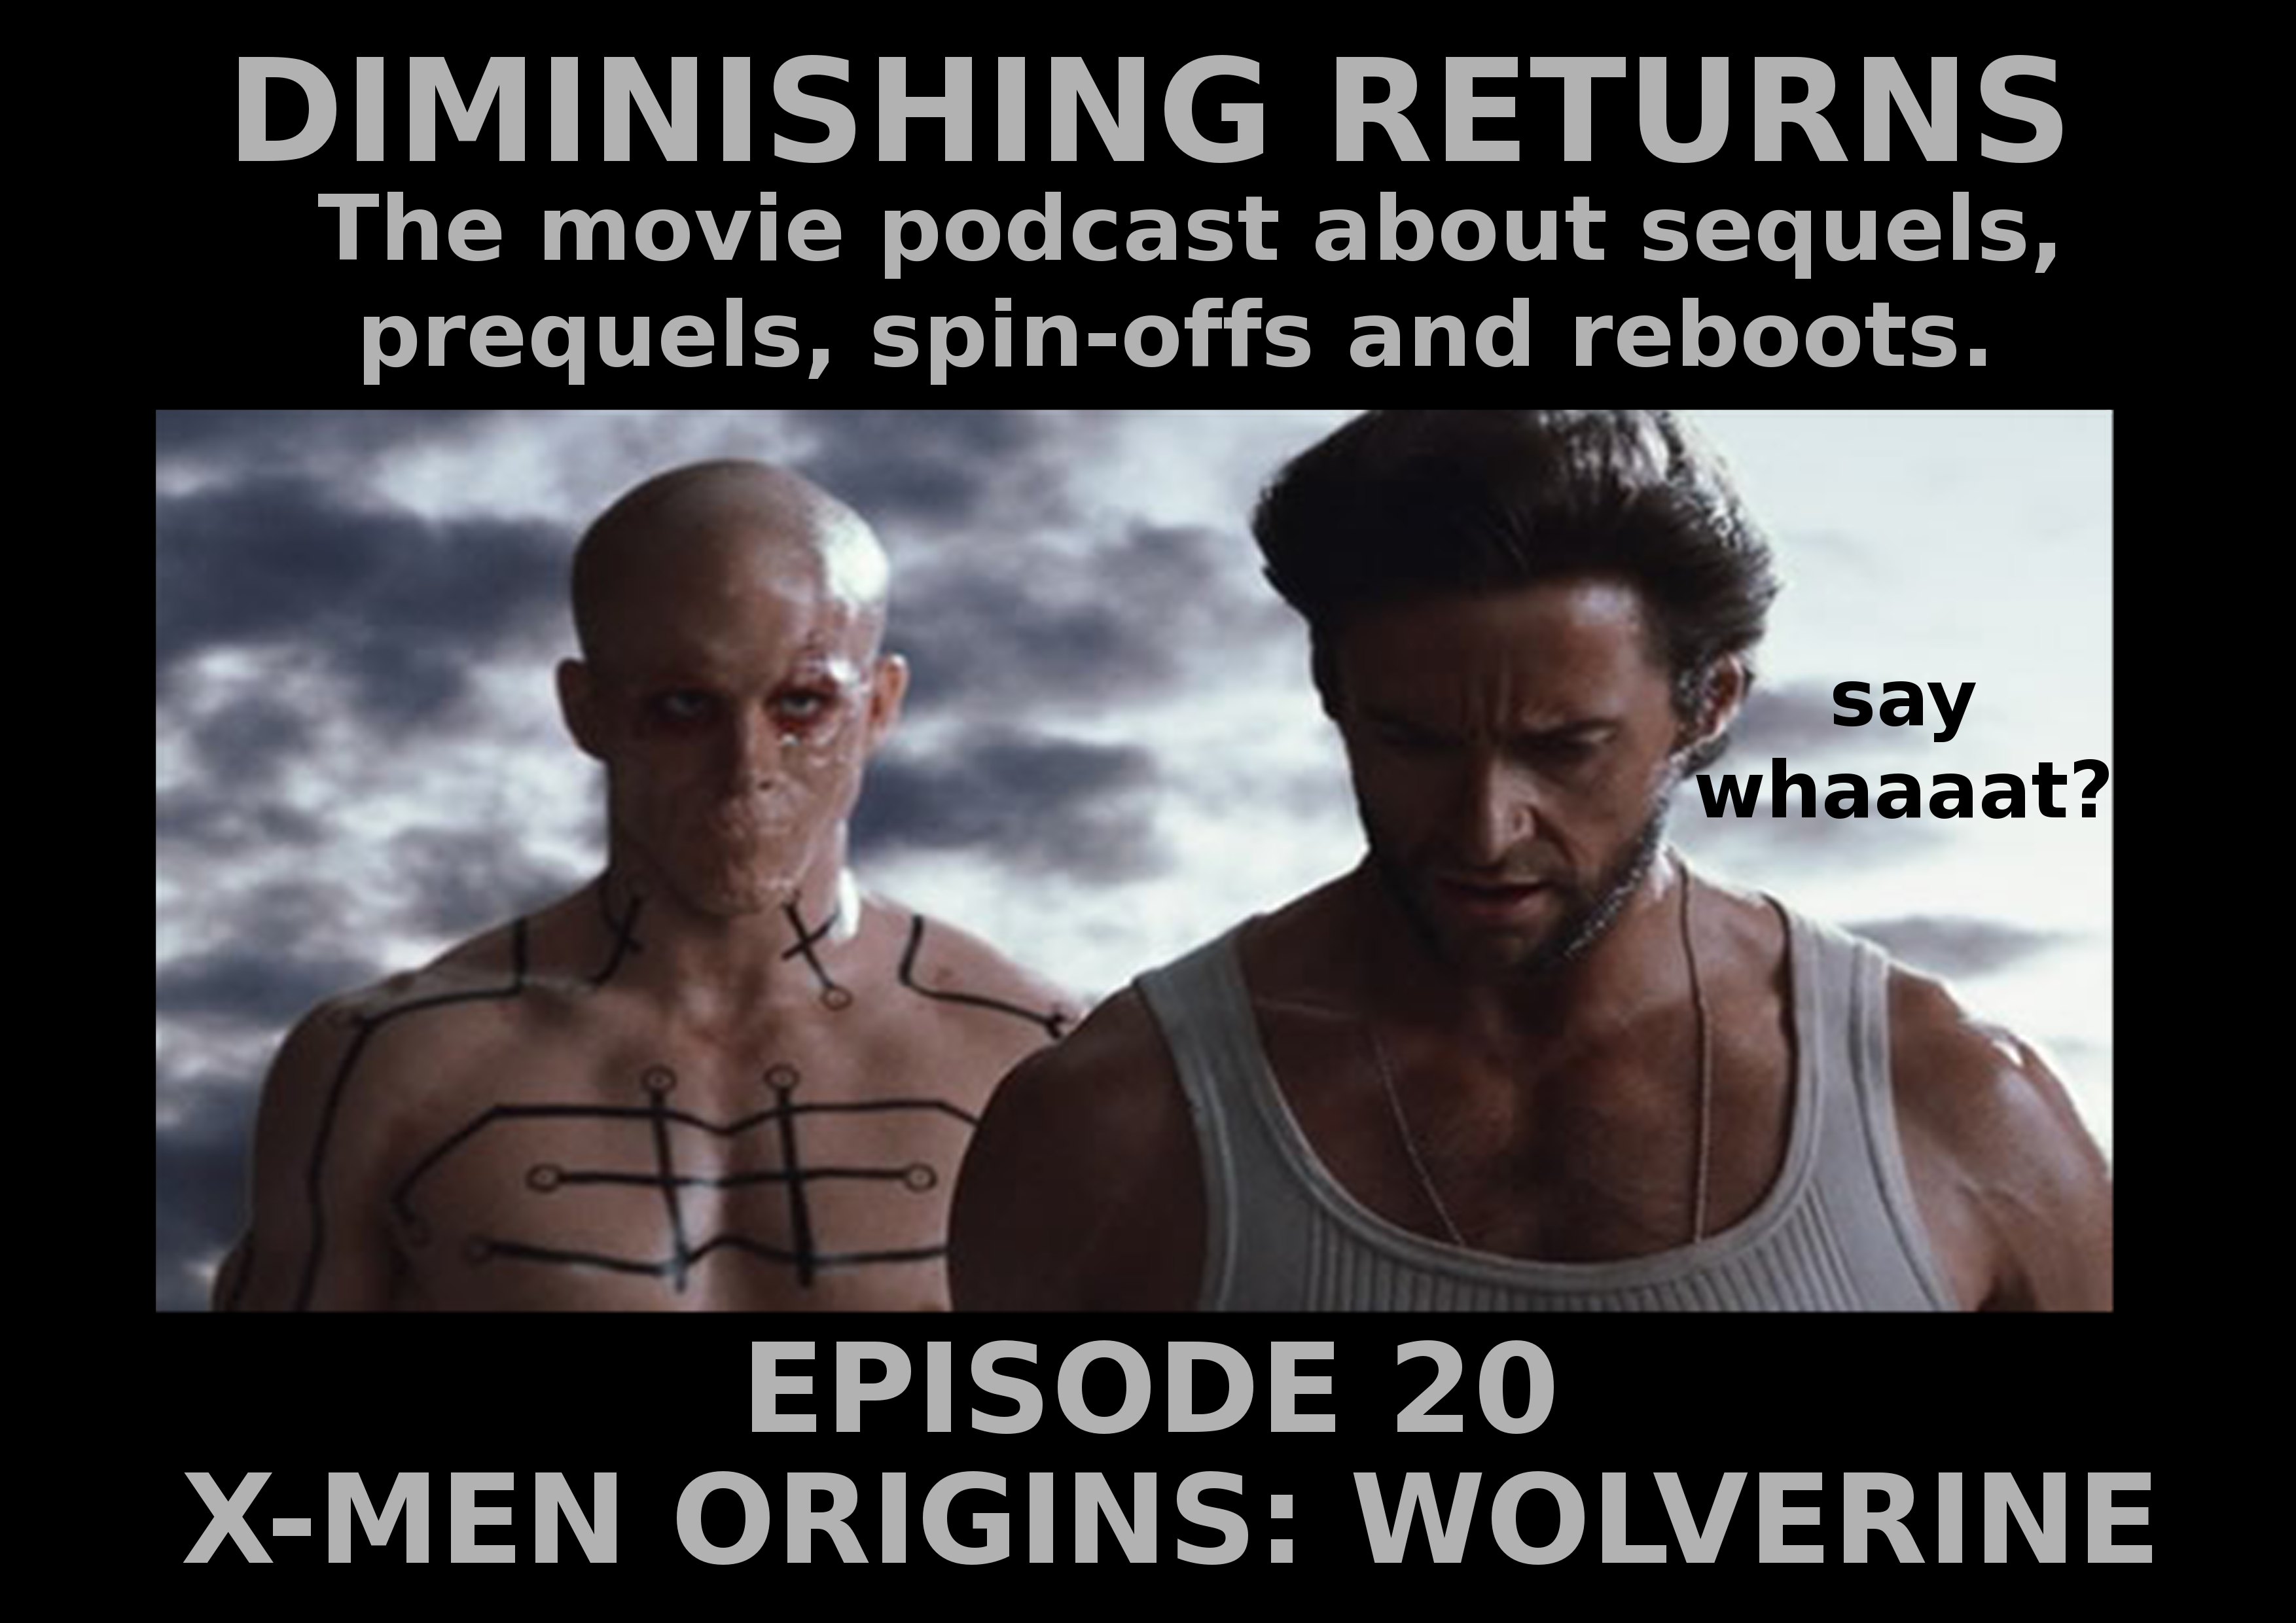 Wolvie and Deadpool. Diminishing Returns Ep20, Xmen Origins: Wolverine. The podcast about sequels, prequels, spin-offs and reboots.